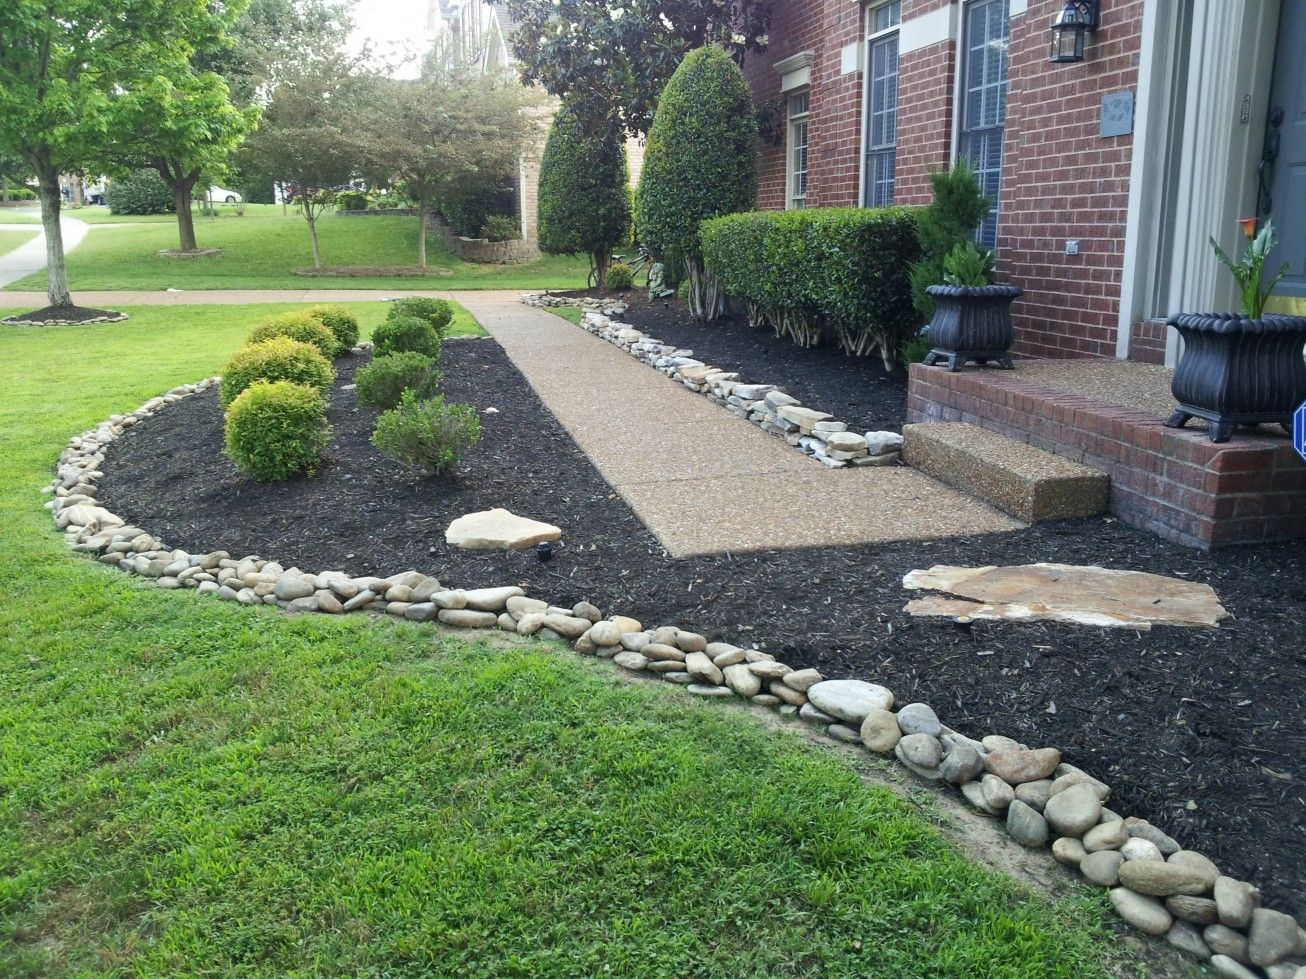 Decorative Gravel For Landscaping Review | Ideas for Using Gravel ...